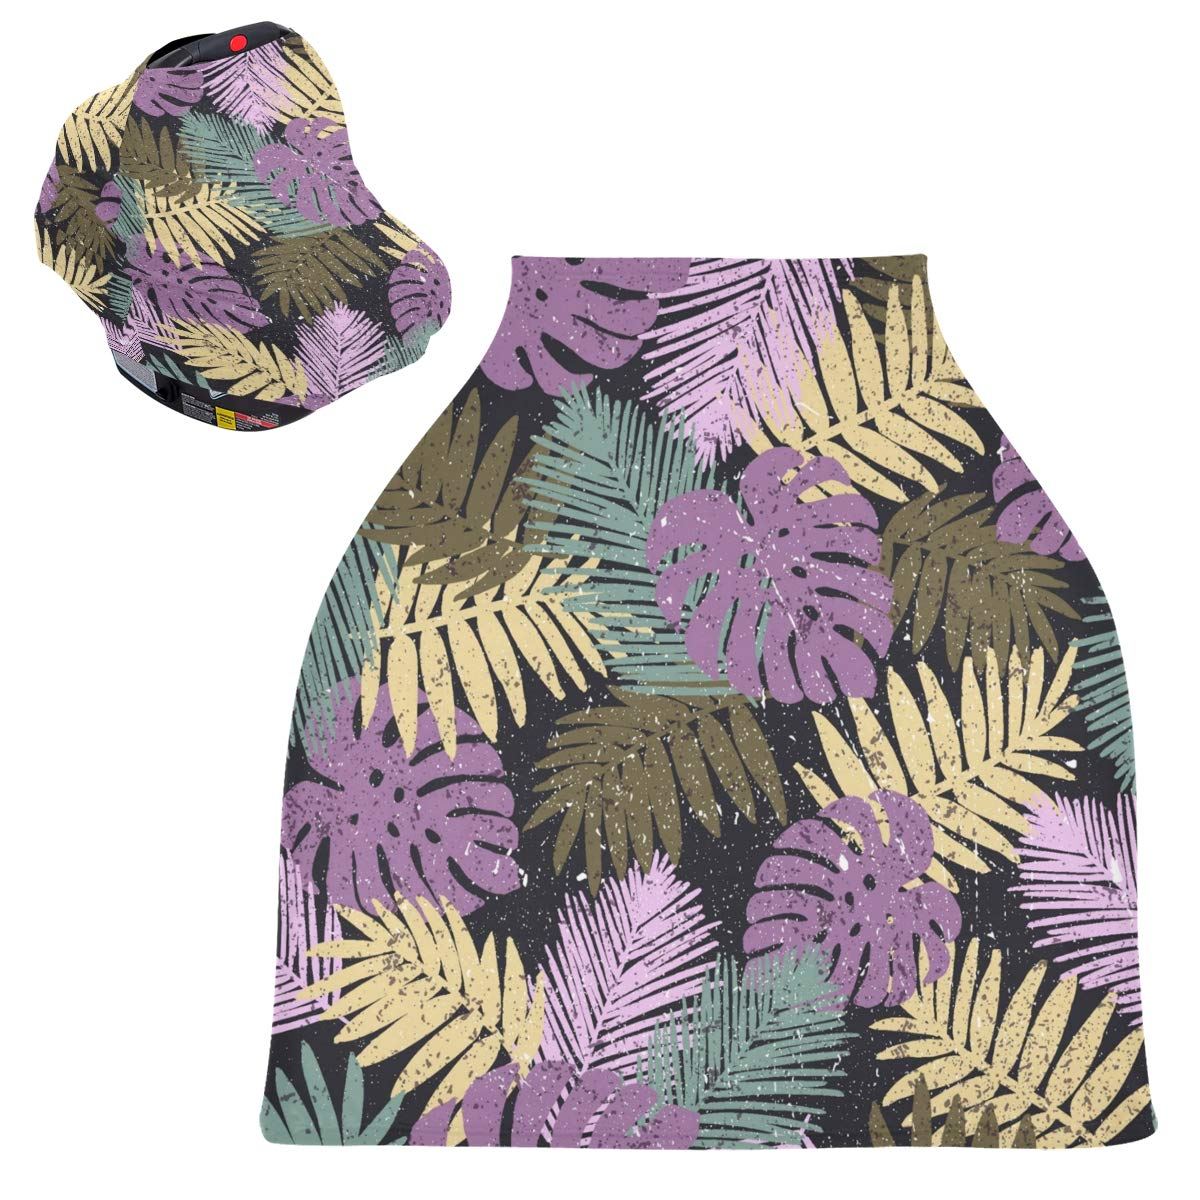 Stretchy Baby Car Seat Canopy - Tropical Palm Leaves Infant Stroller Cover Multi Use Carseat Canopy Cover Nursing Cover for Breastfeeding